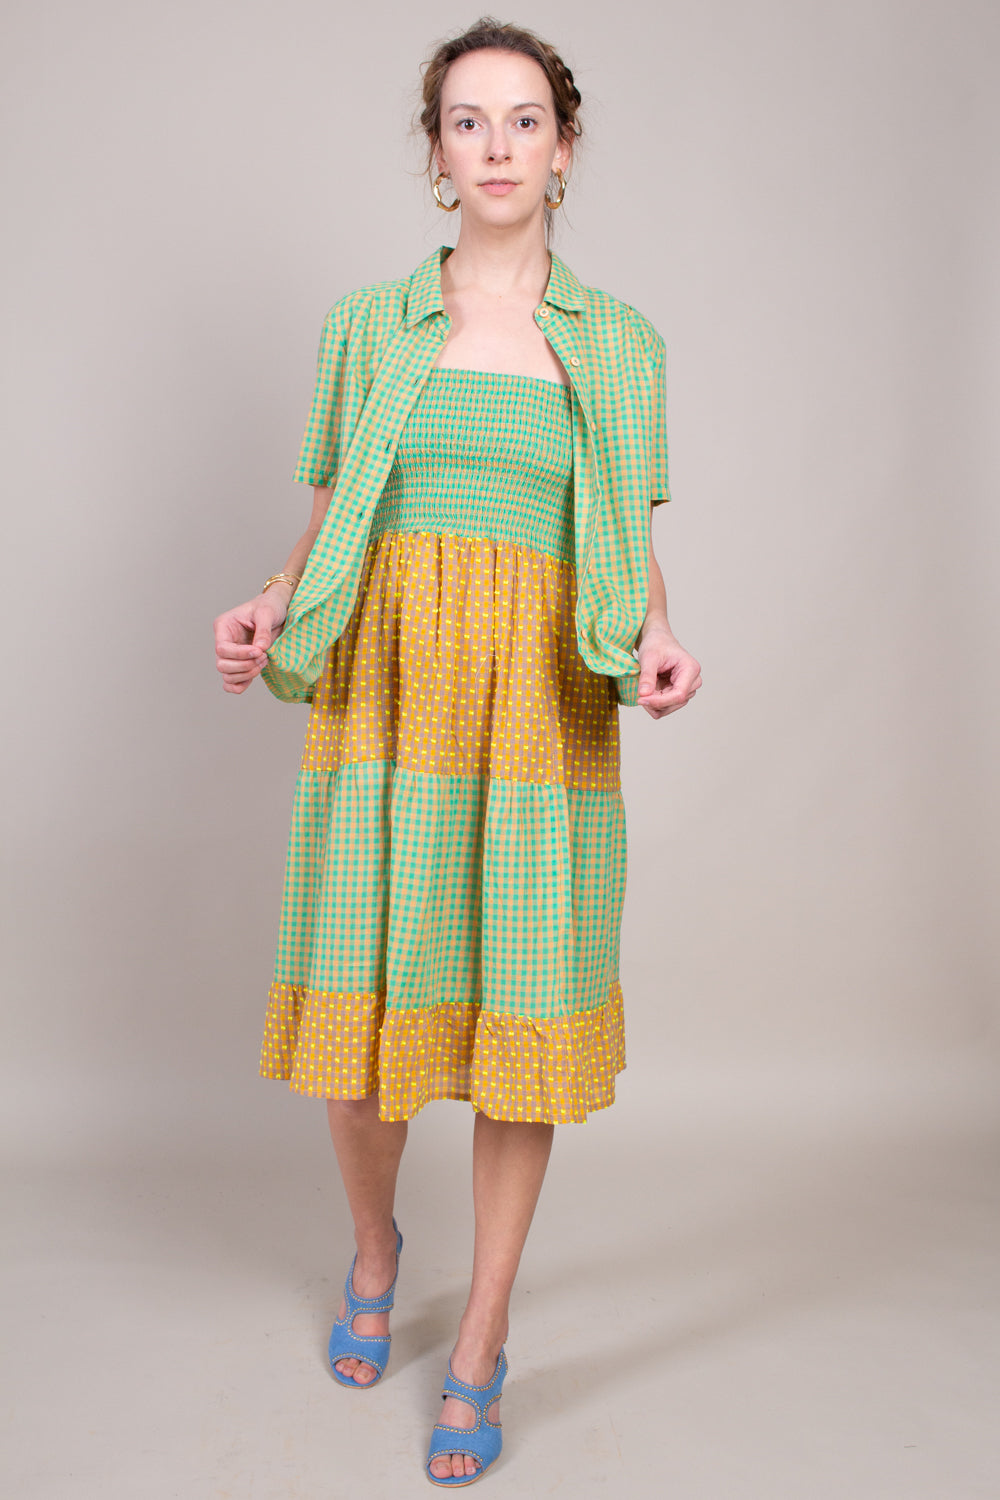 Daphne Skirt in Cantaloupe